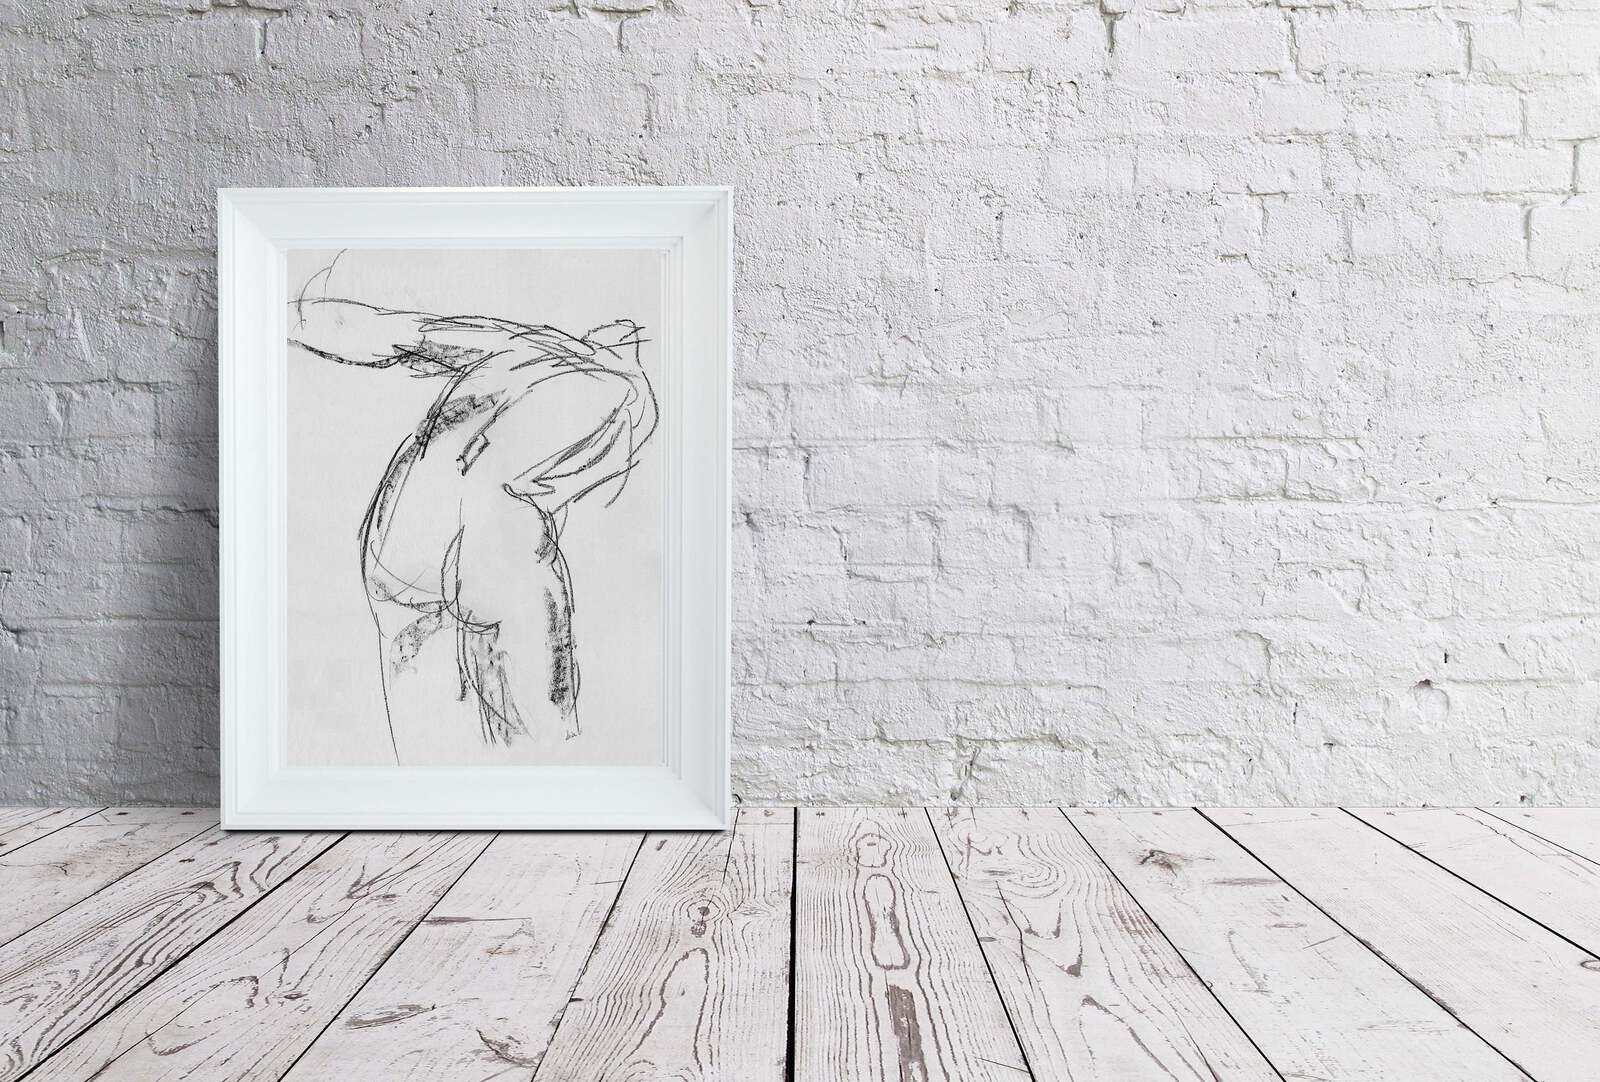 Charcoal female figure sketch framed and sitting on distressed wood floor leaning on a white brick wall